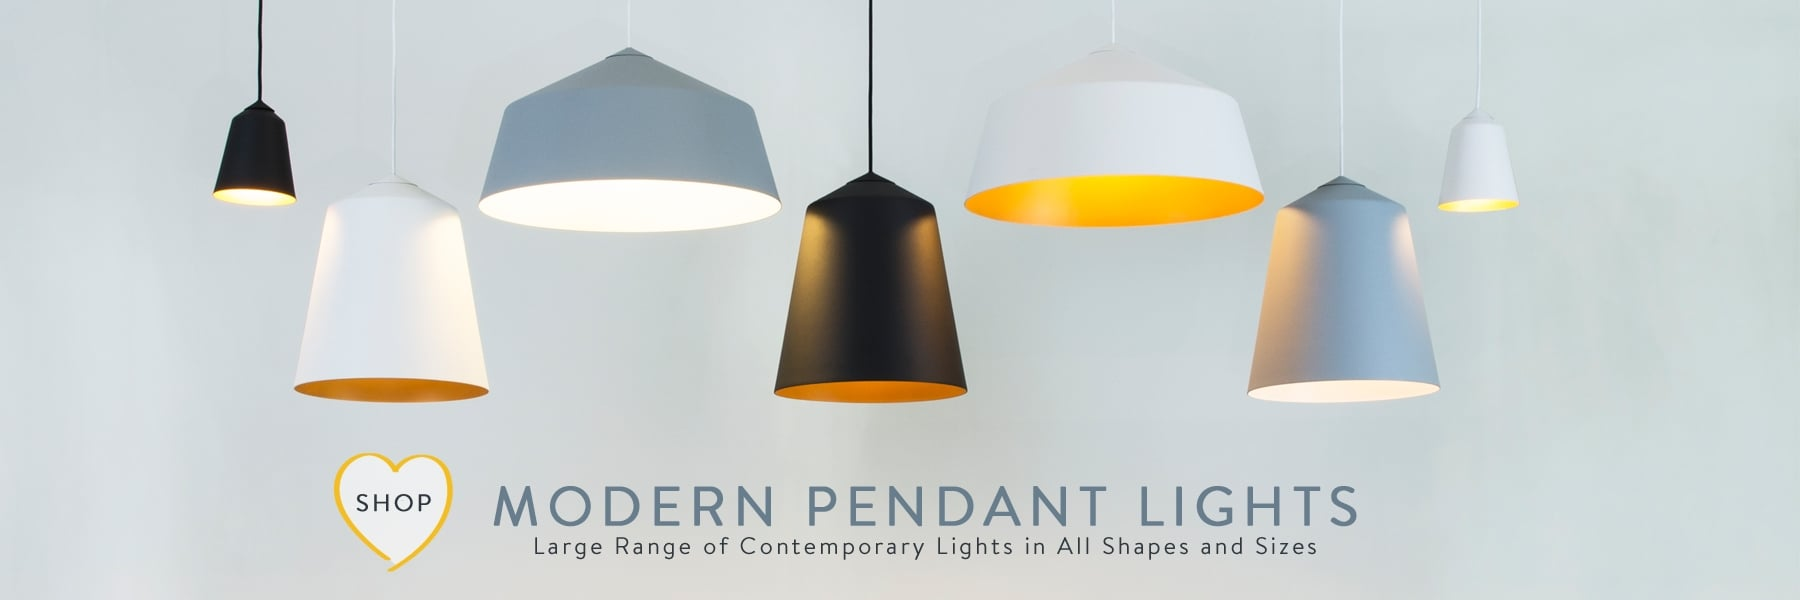 home and hospitality light fittings to delight all styles and settings